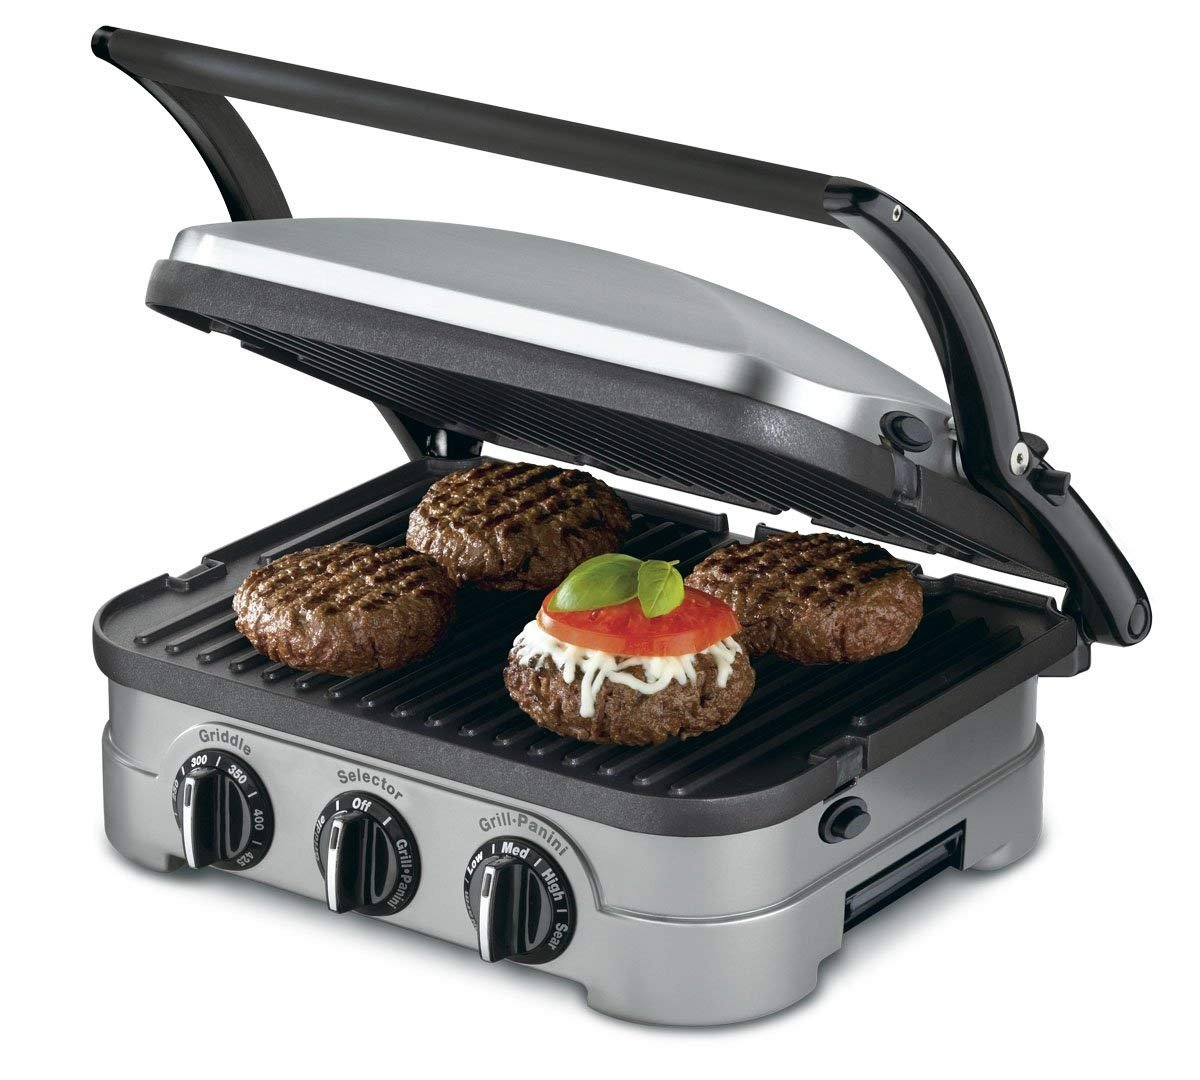 Cuisinart GRID-8NPC Griddler Gourmet Countertop 5-in-1 Panini Sandwhich Maker Grill Griddle